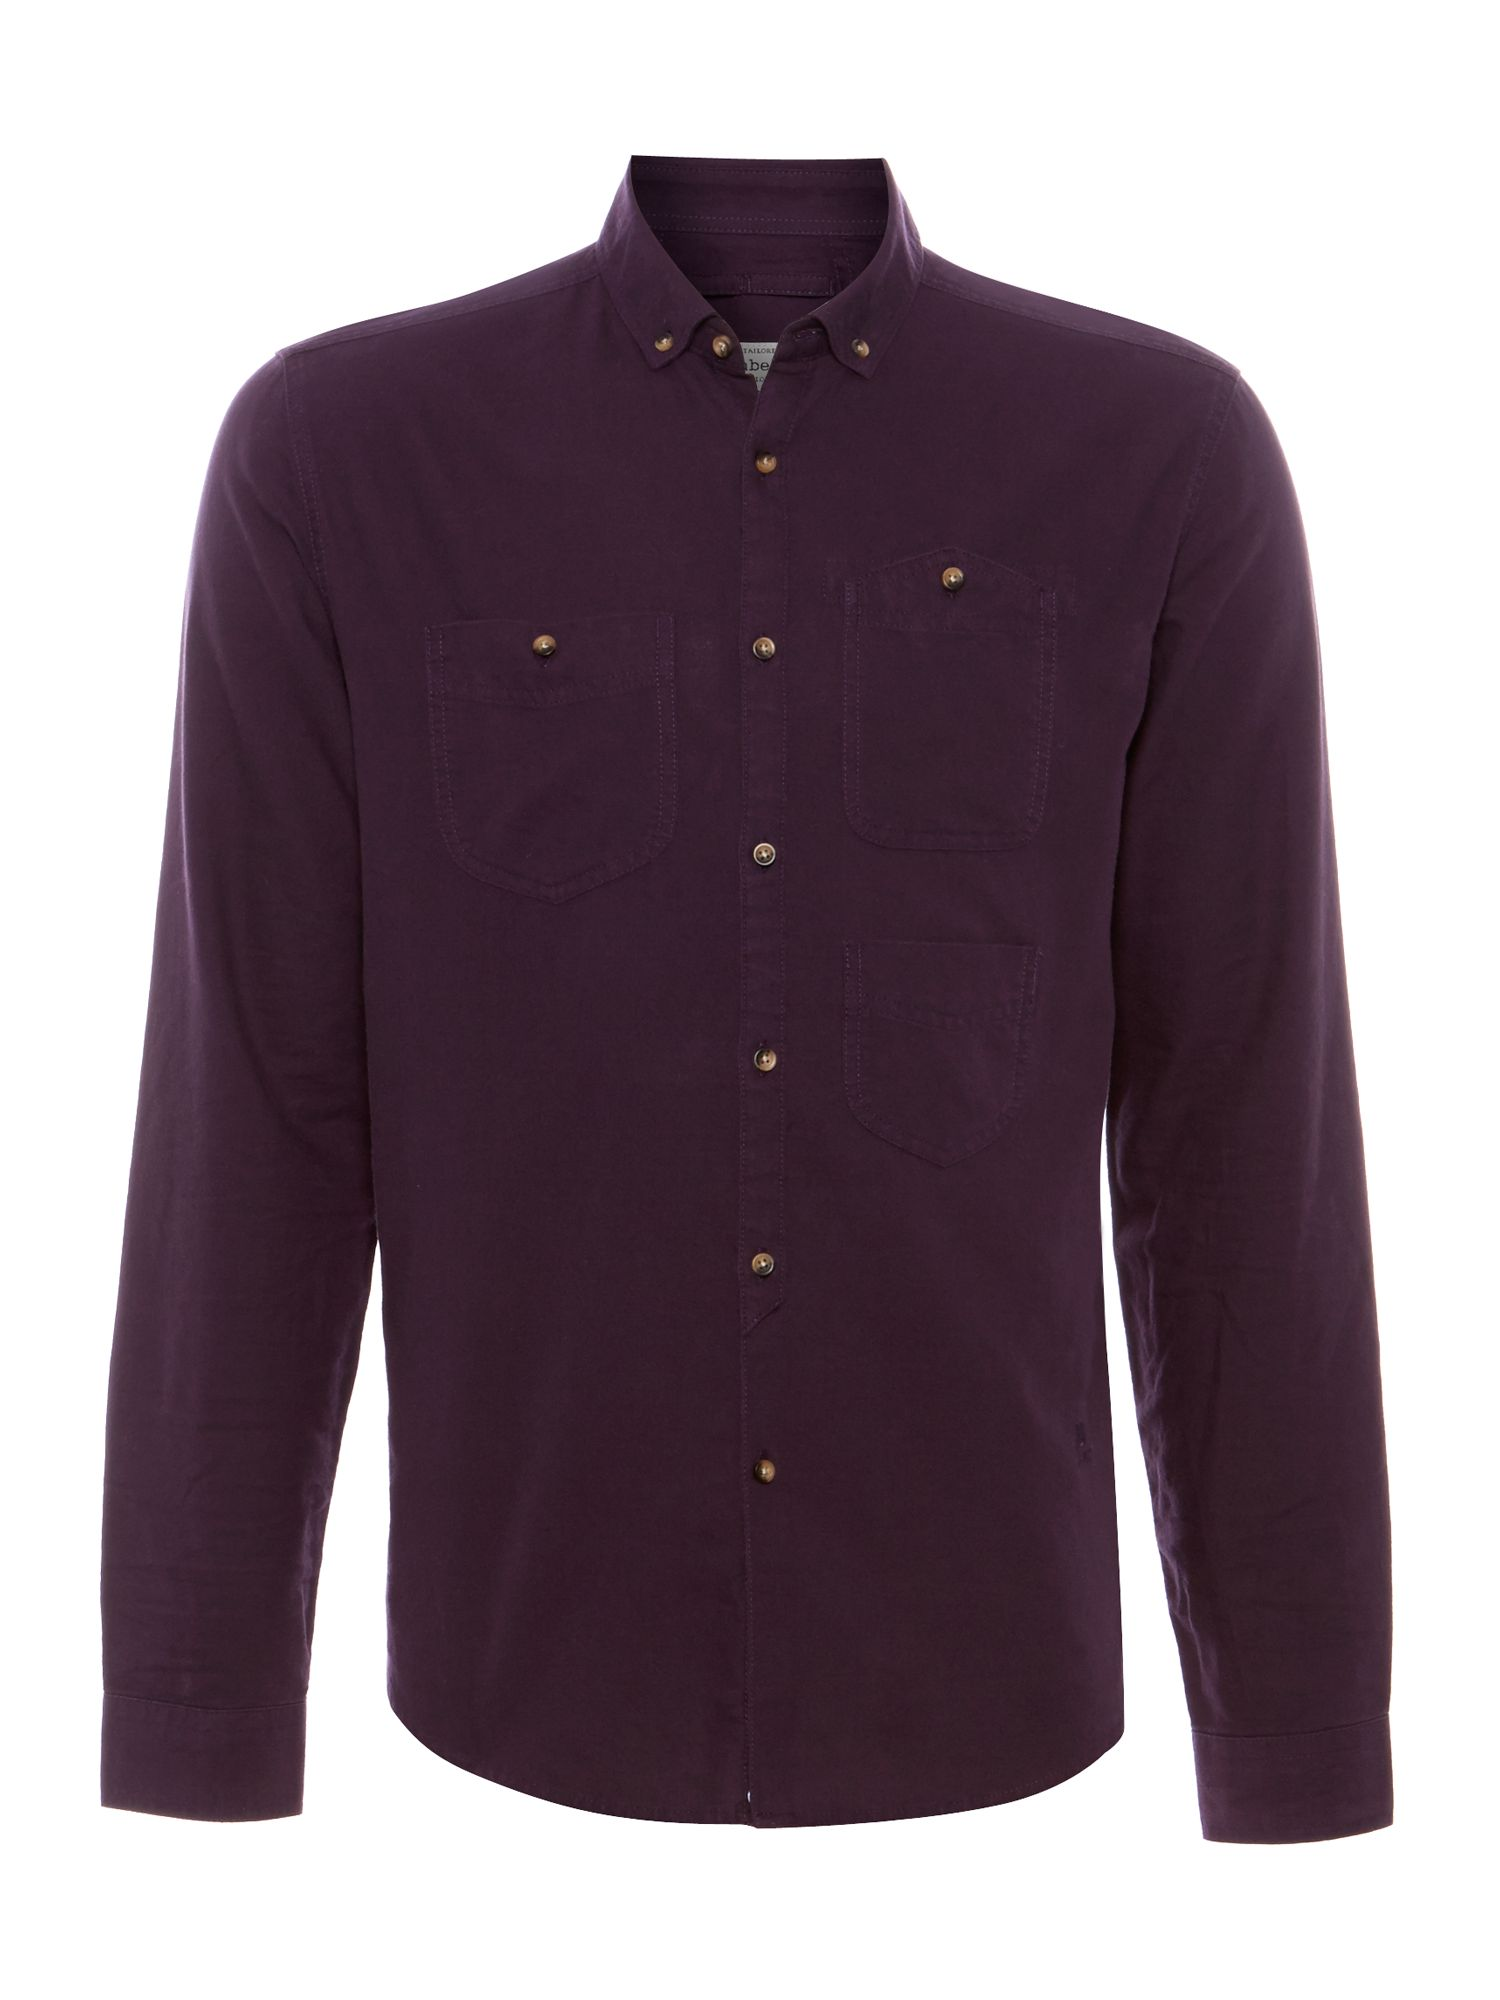 Freeman plain oxford long sleeve shirt